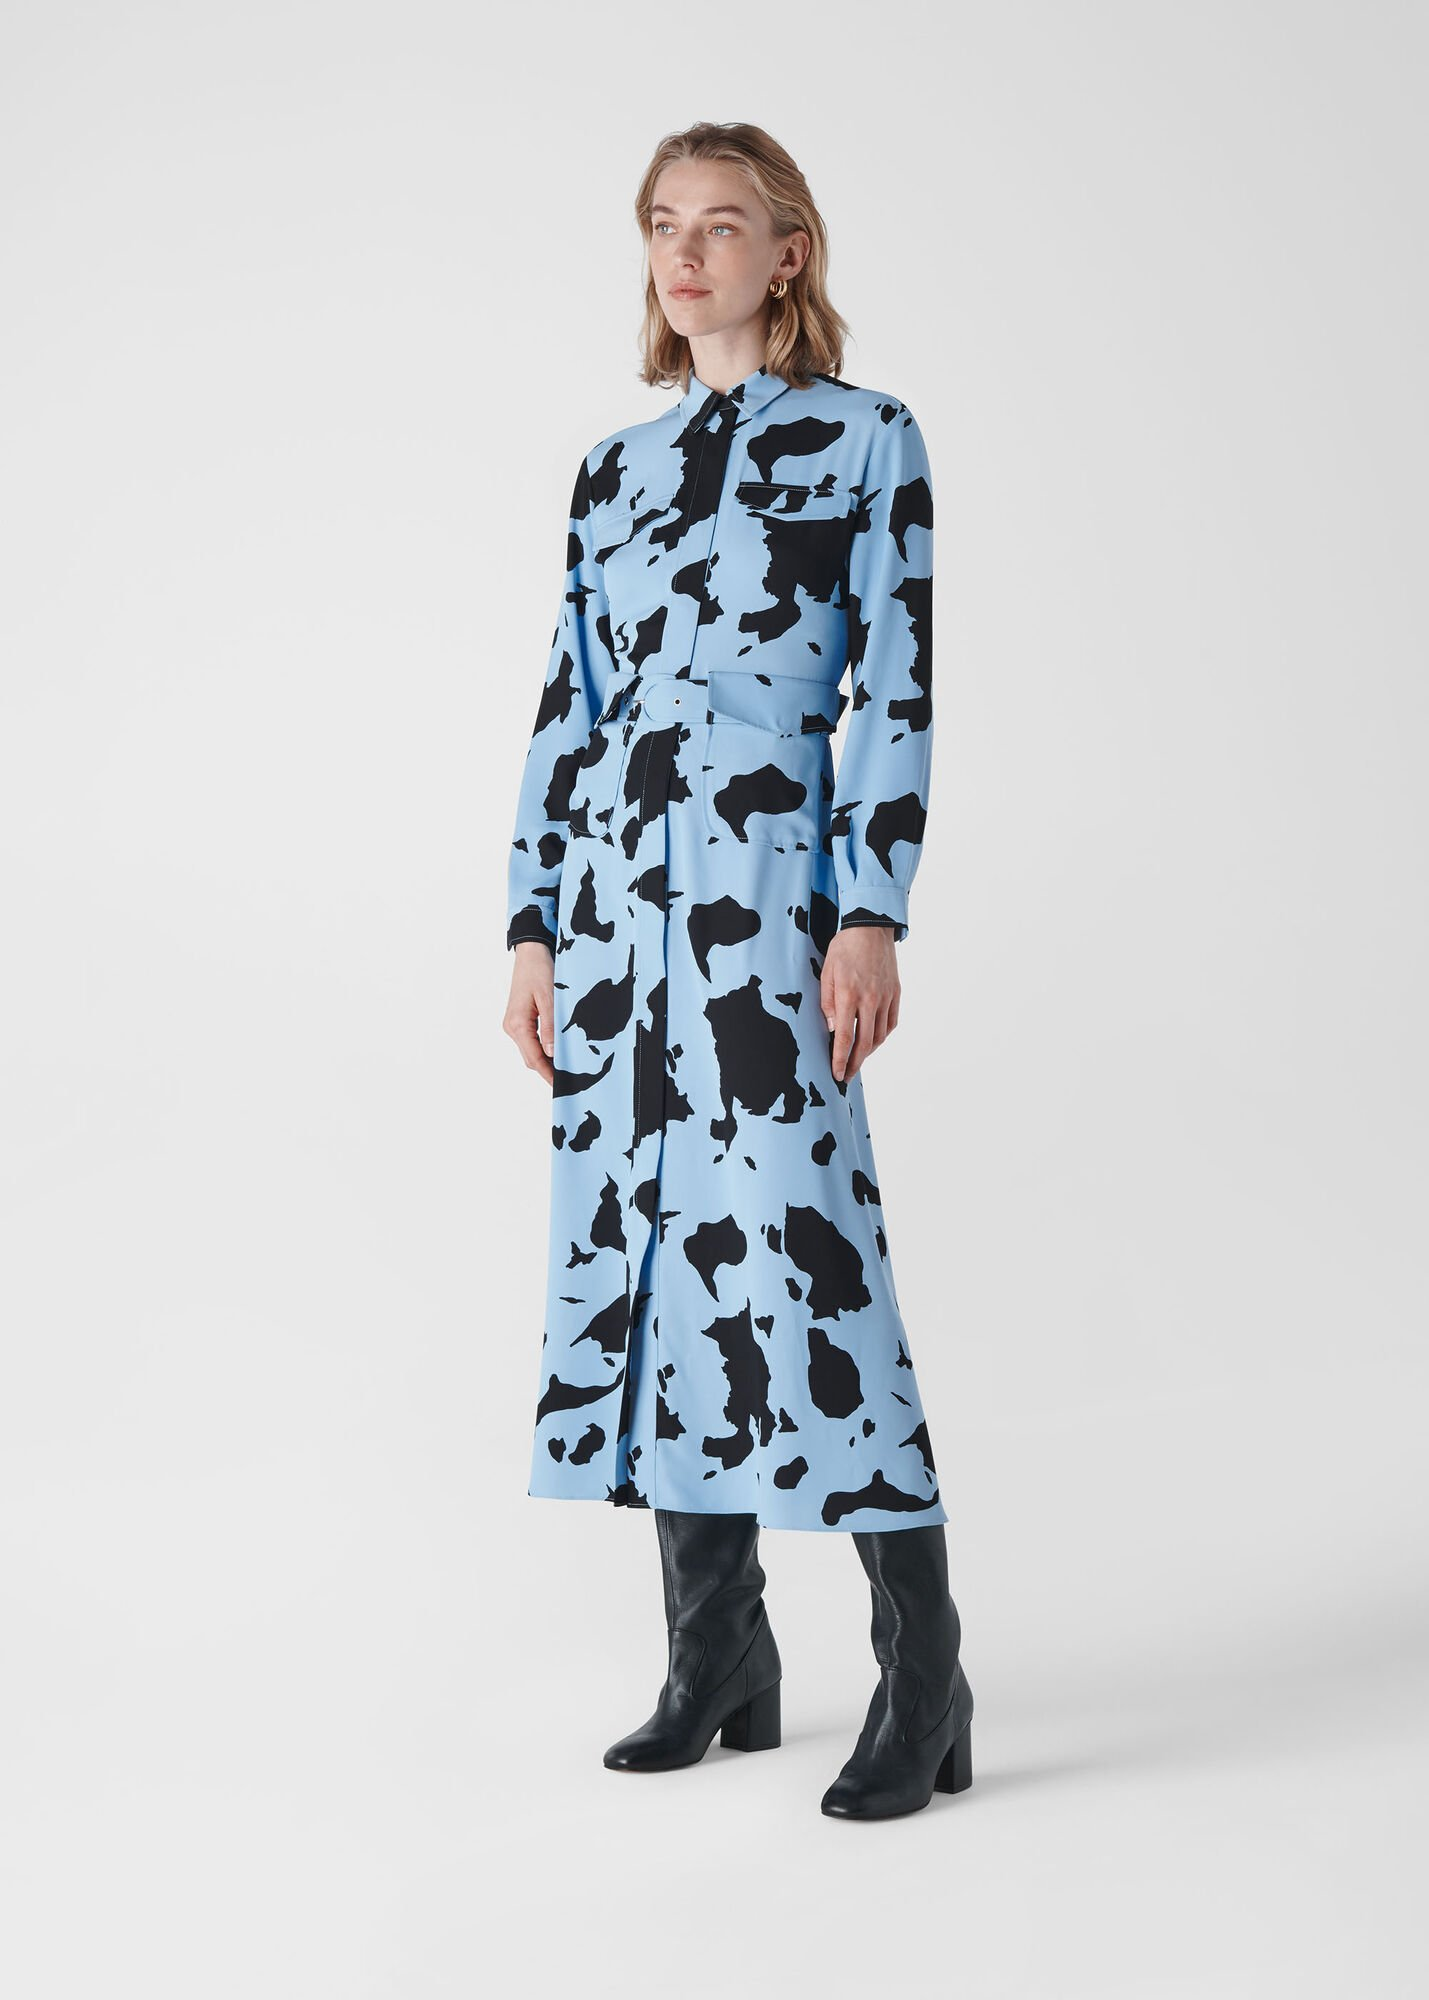 Cow Print Military Dress